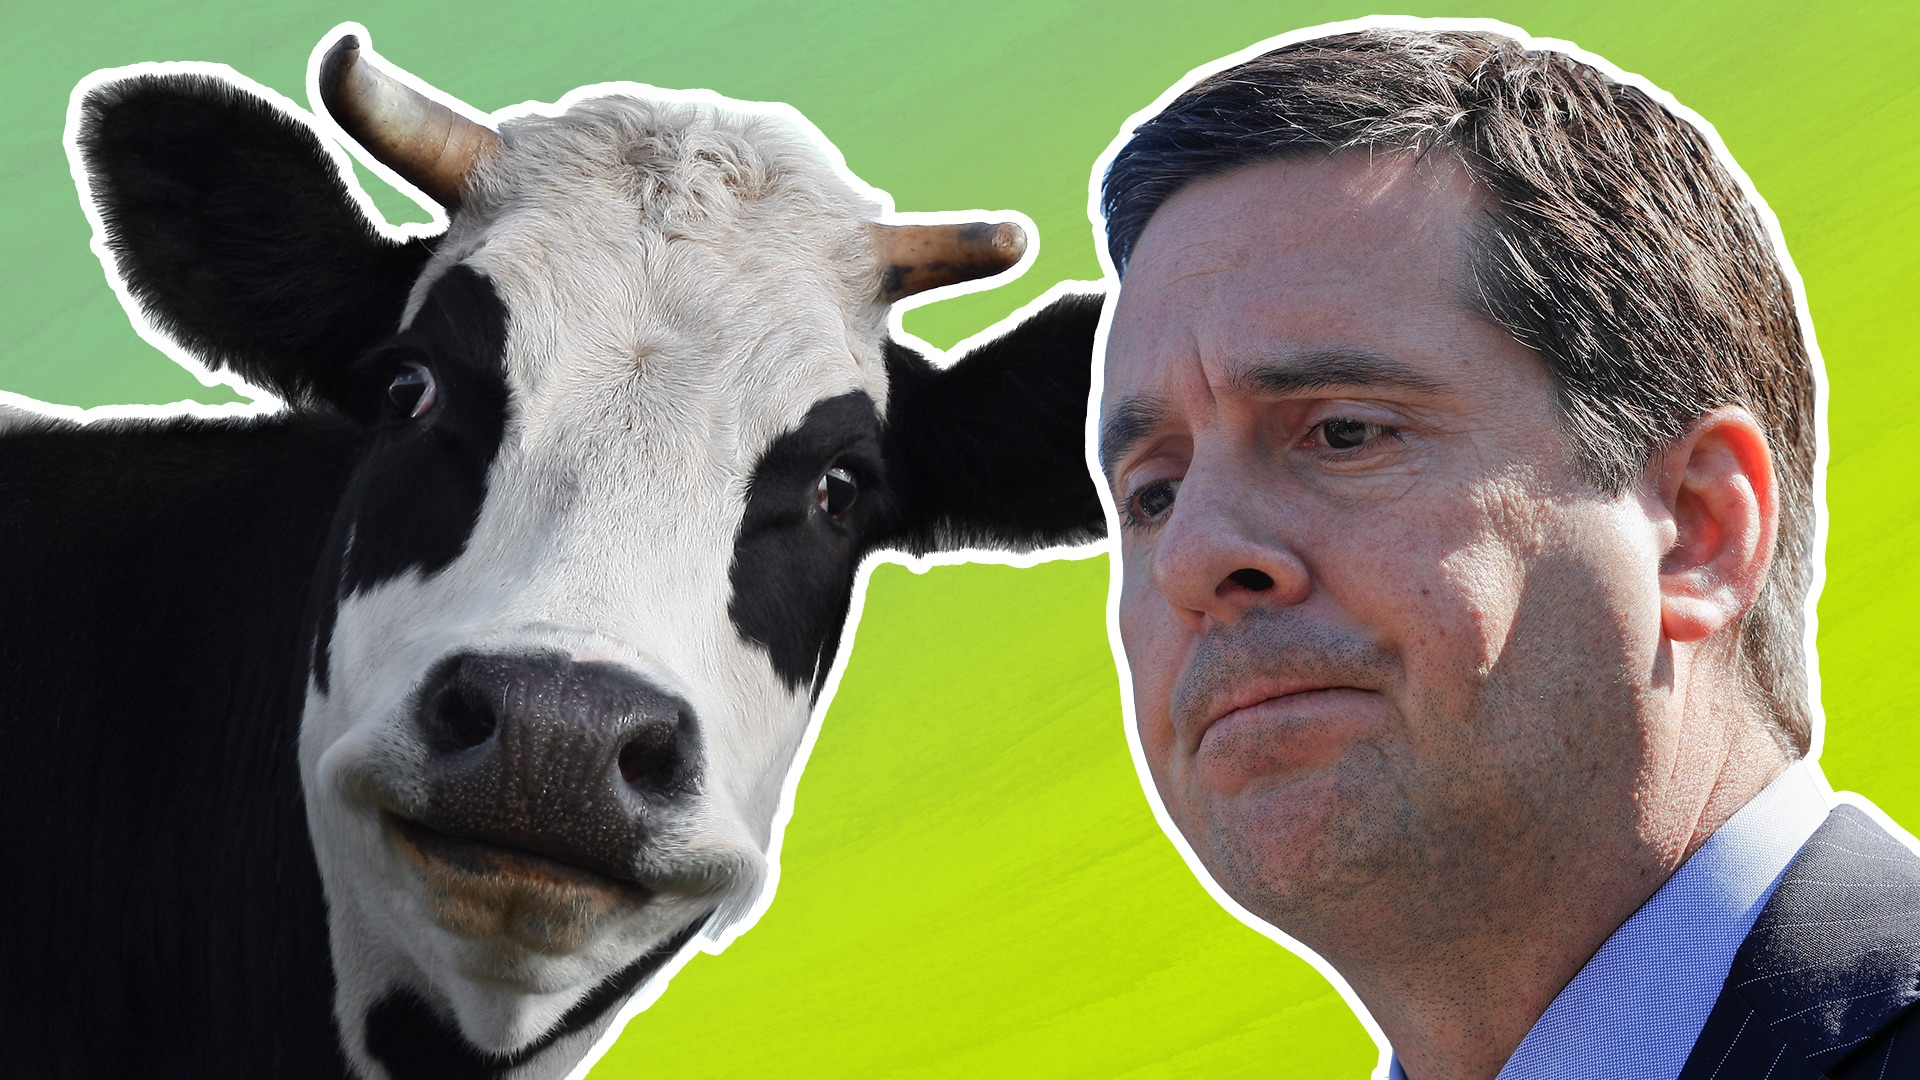 Why Devin Nunes's laughable cow lawsuit is no laughing matter